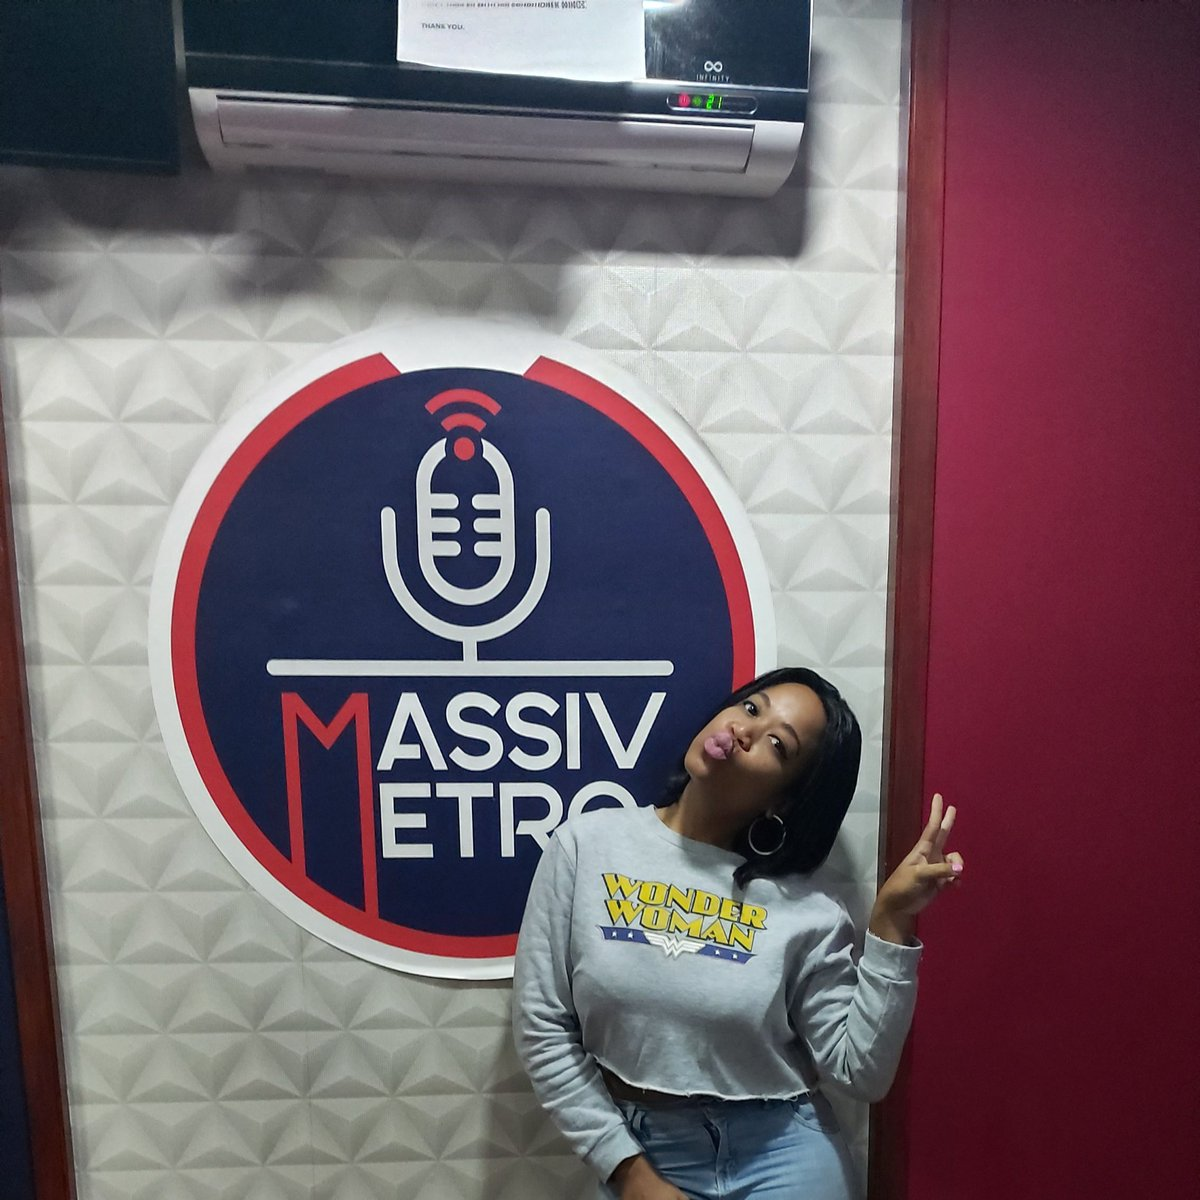 #TheElementTop20 | #TheElement   She's herrrrrre!!! Let's countdown 20 of your favourite Hip Hop joints from now until 3PM on .@MassivMetro with .@QueenAzizzar.   Listen Live: http://ndstream.net/massivmetro/live/…  #ForTheLoveOfHipHoppic.twitter.com/YZUtrhqB5P